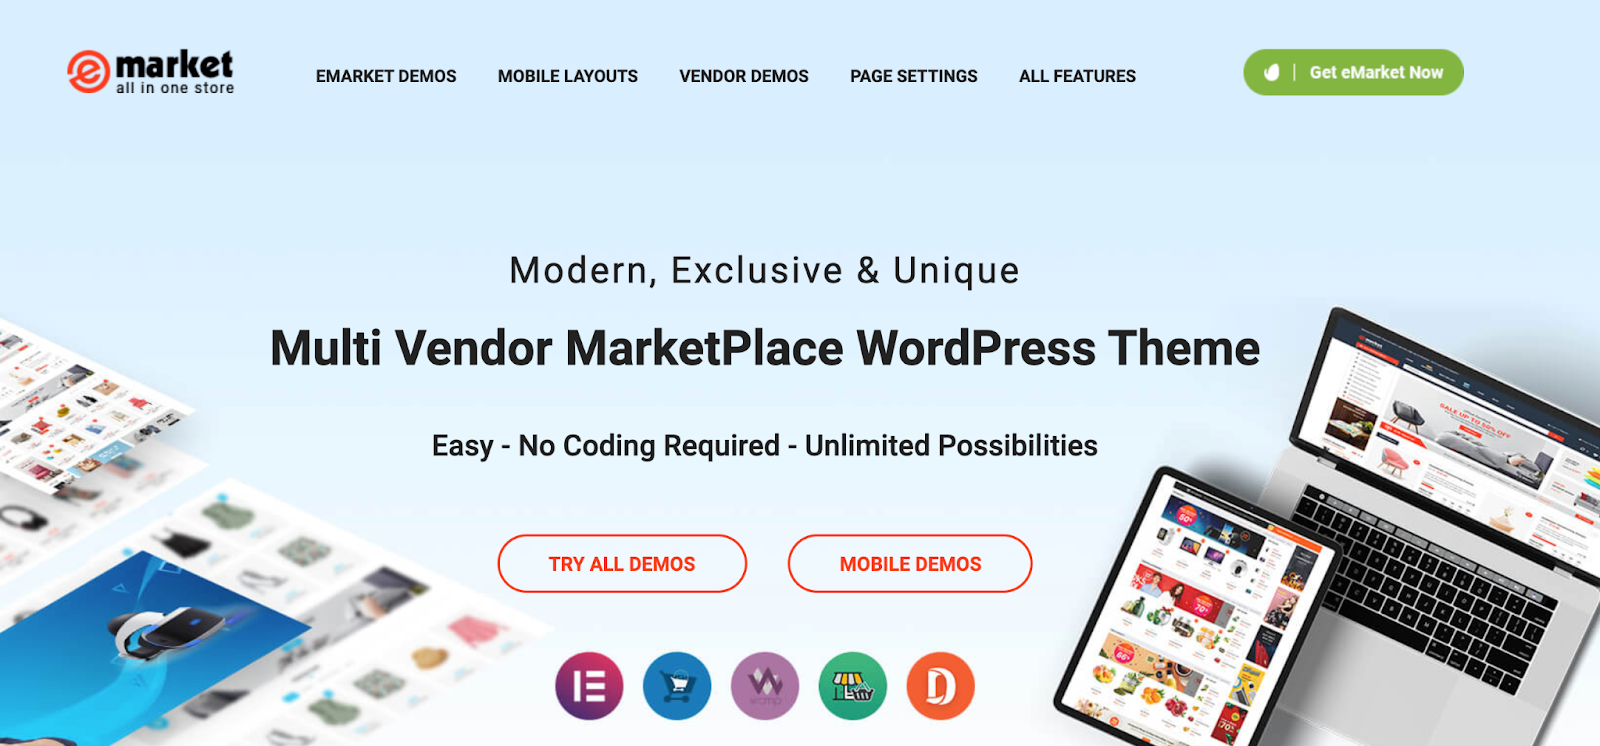 eMarket WordPress Marketplace theme homepage featuring the tagline, computer screen, and example of the the theme layout